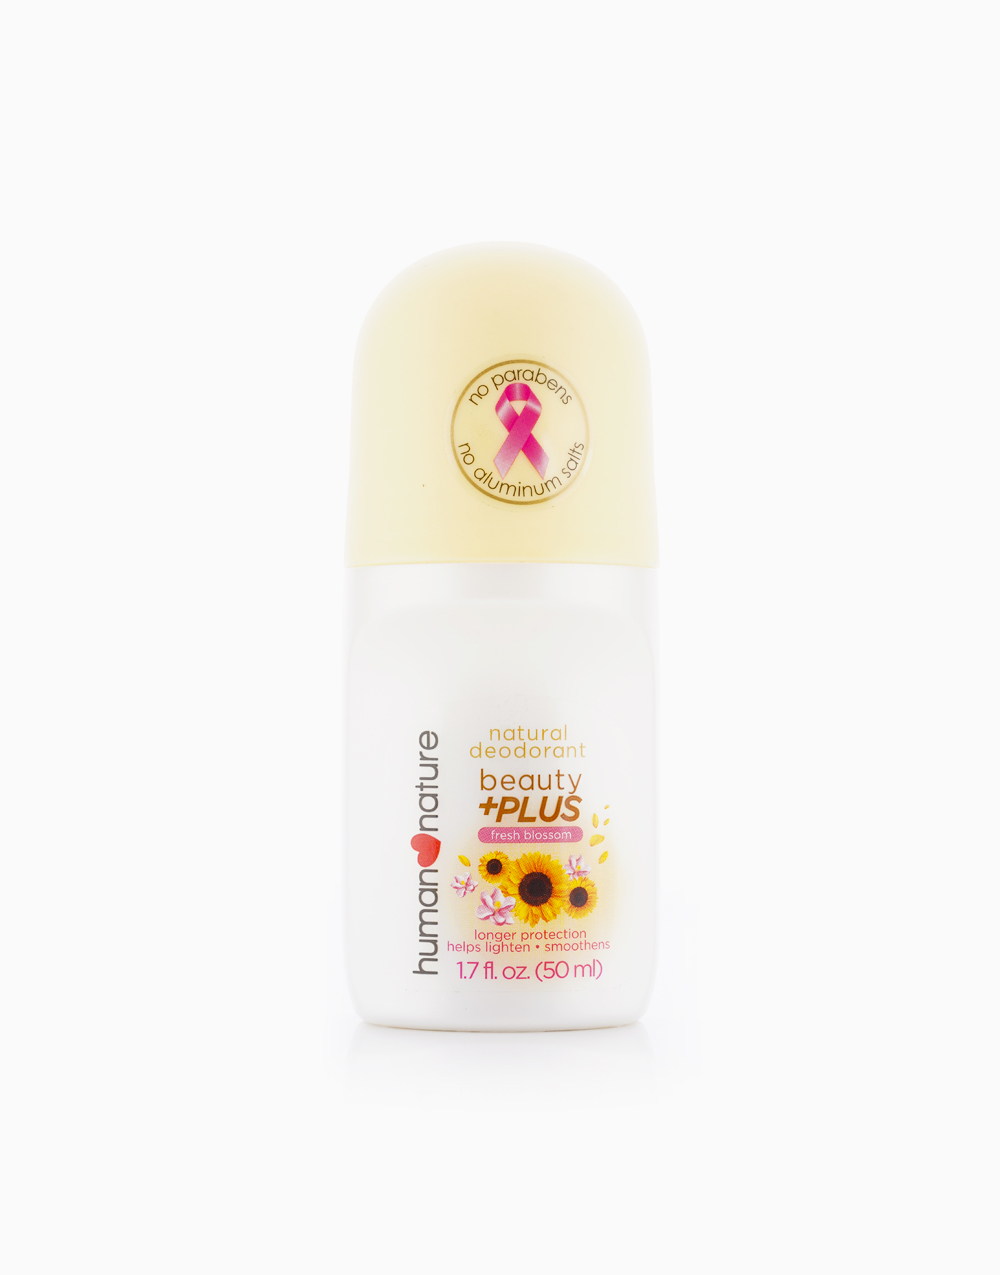 Natural Deodorant Beauty+ PLUS (50ml) by Human Nature | Fresh Blossom